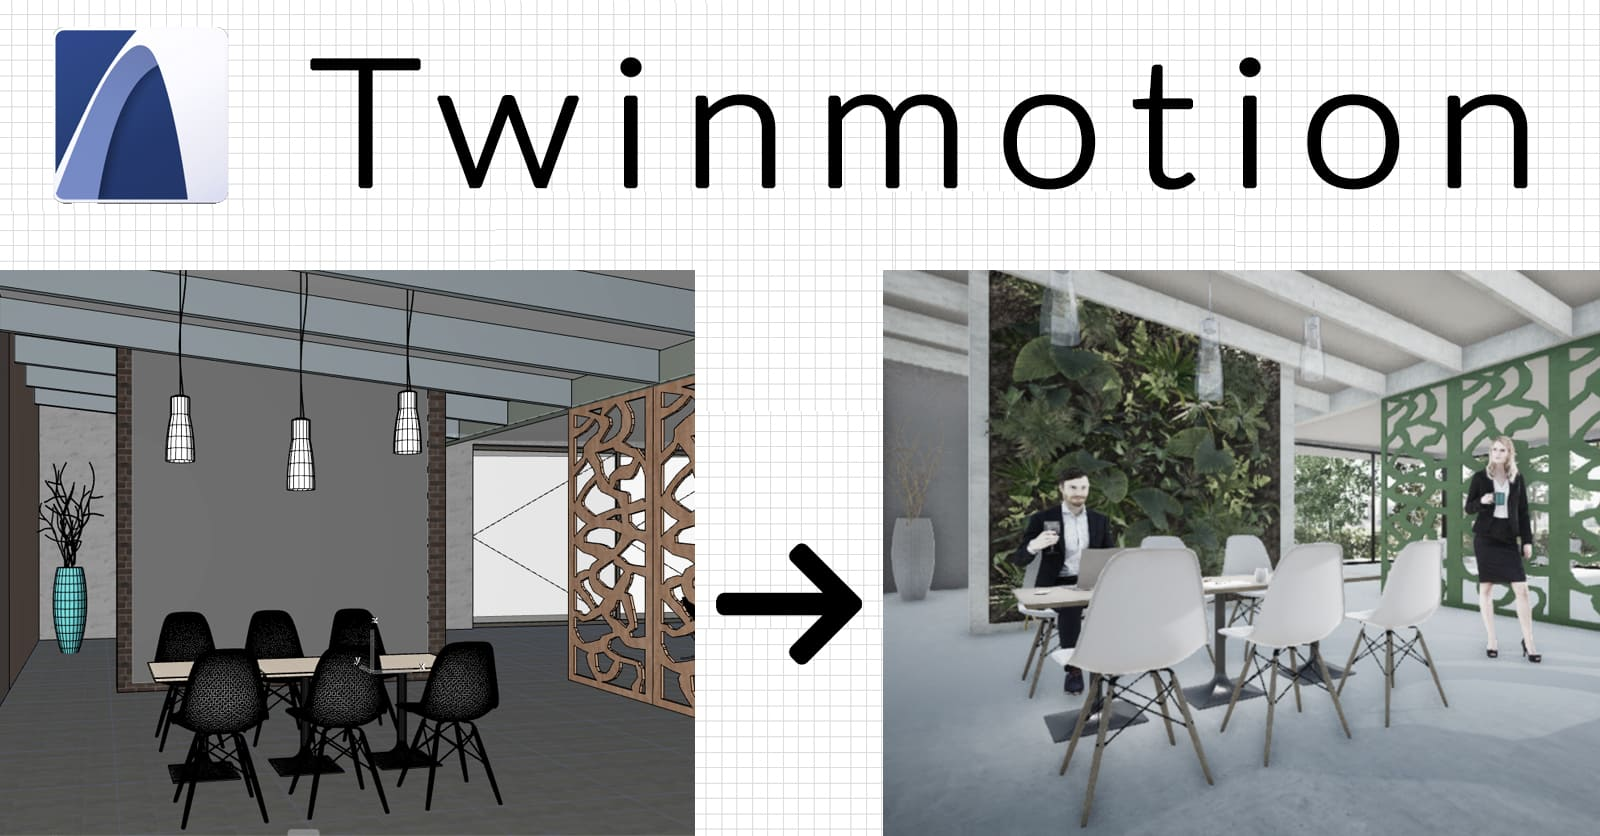 Archicad - Eksport do Twinmotion (Poradnik, tutorial)